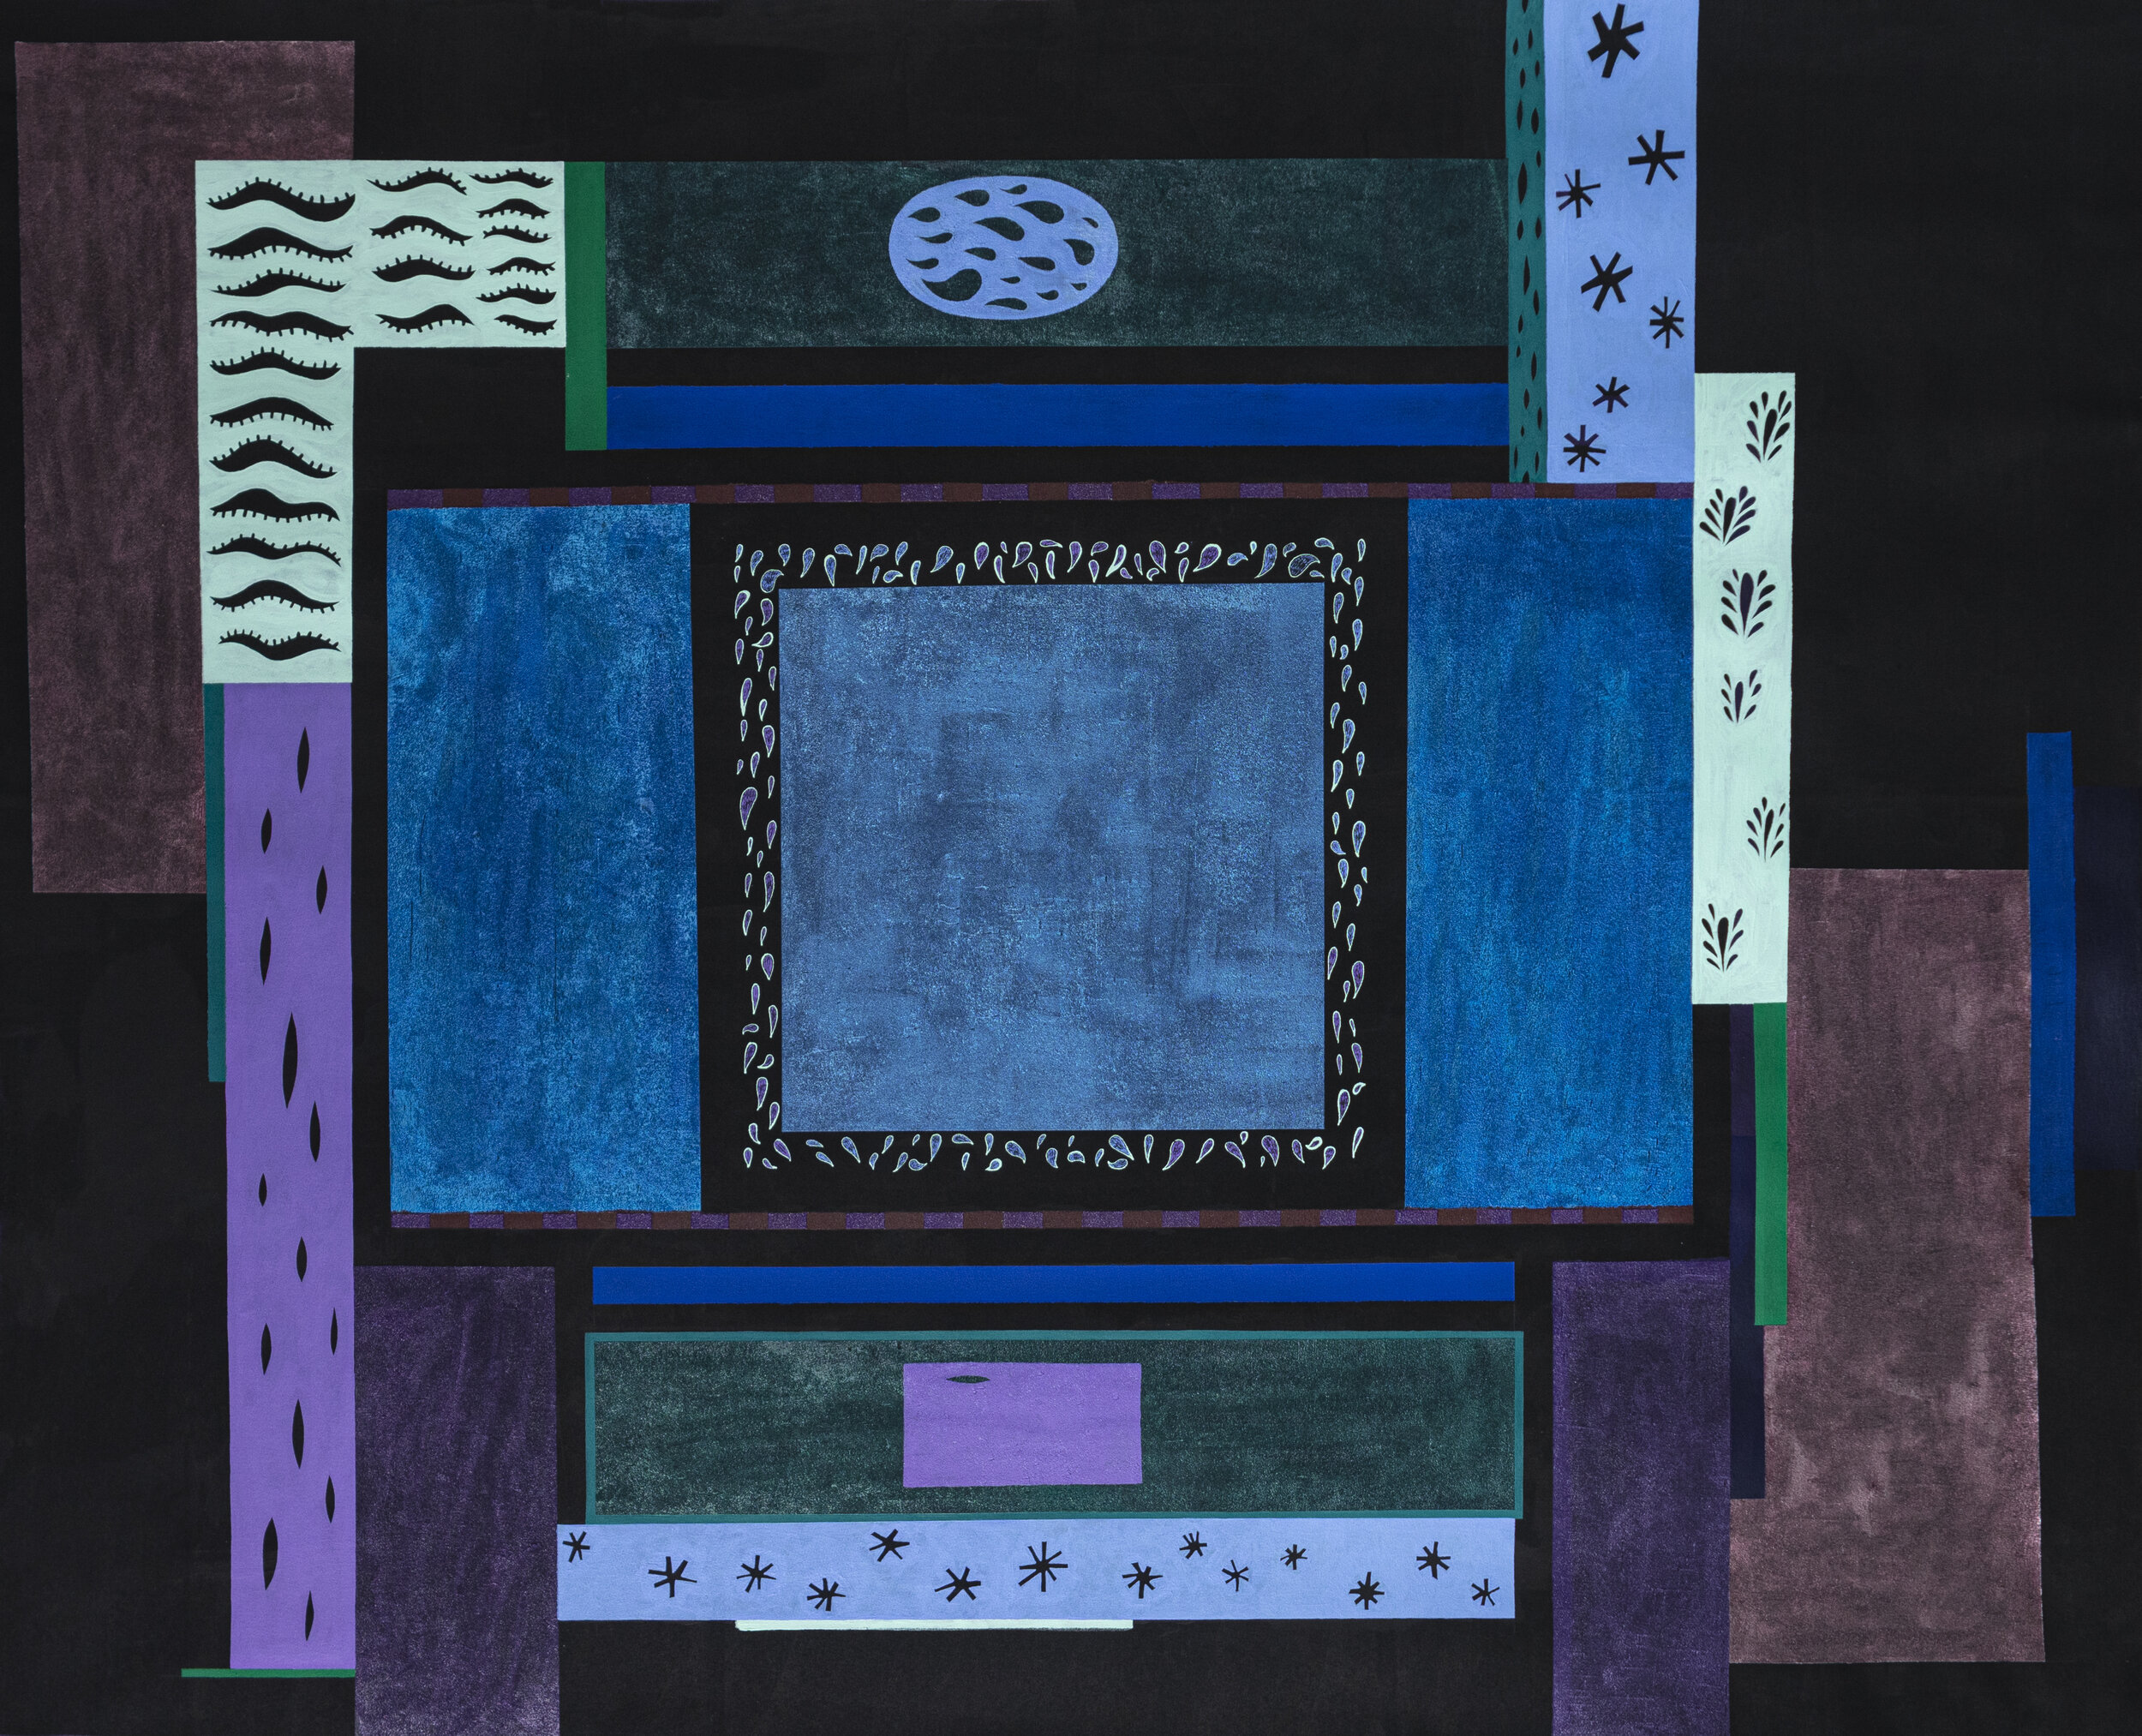 Hinge  2019 Acrylic and glass beads on canvas 65 x 81 inches  [Image description: A large blue square in the middle of a black canvas is surrounded by rectangles of varying sizes in shades of blue, teal, purple, green, and brown, some of which have decorative patterns inside of them.]